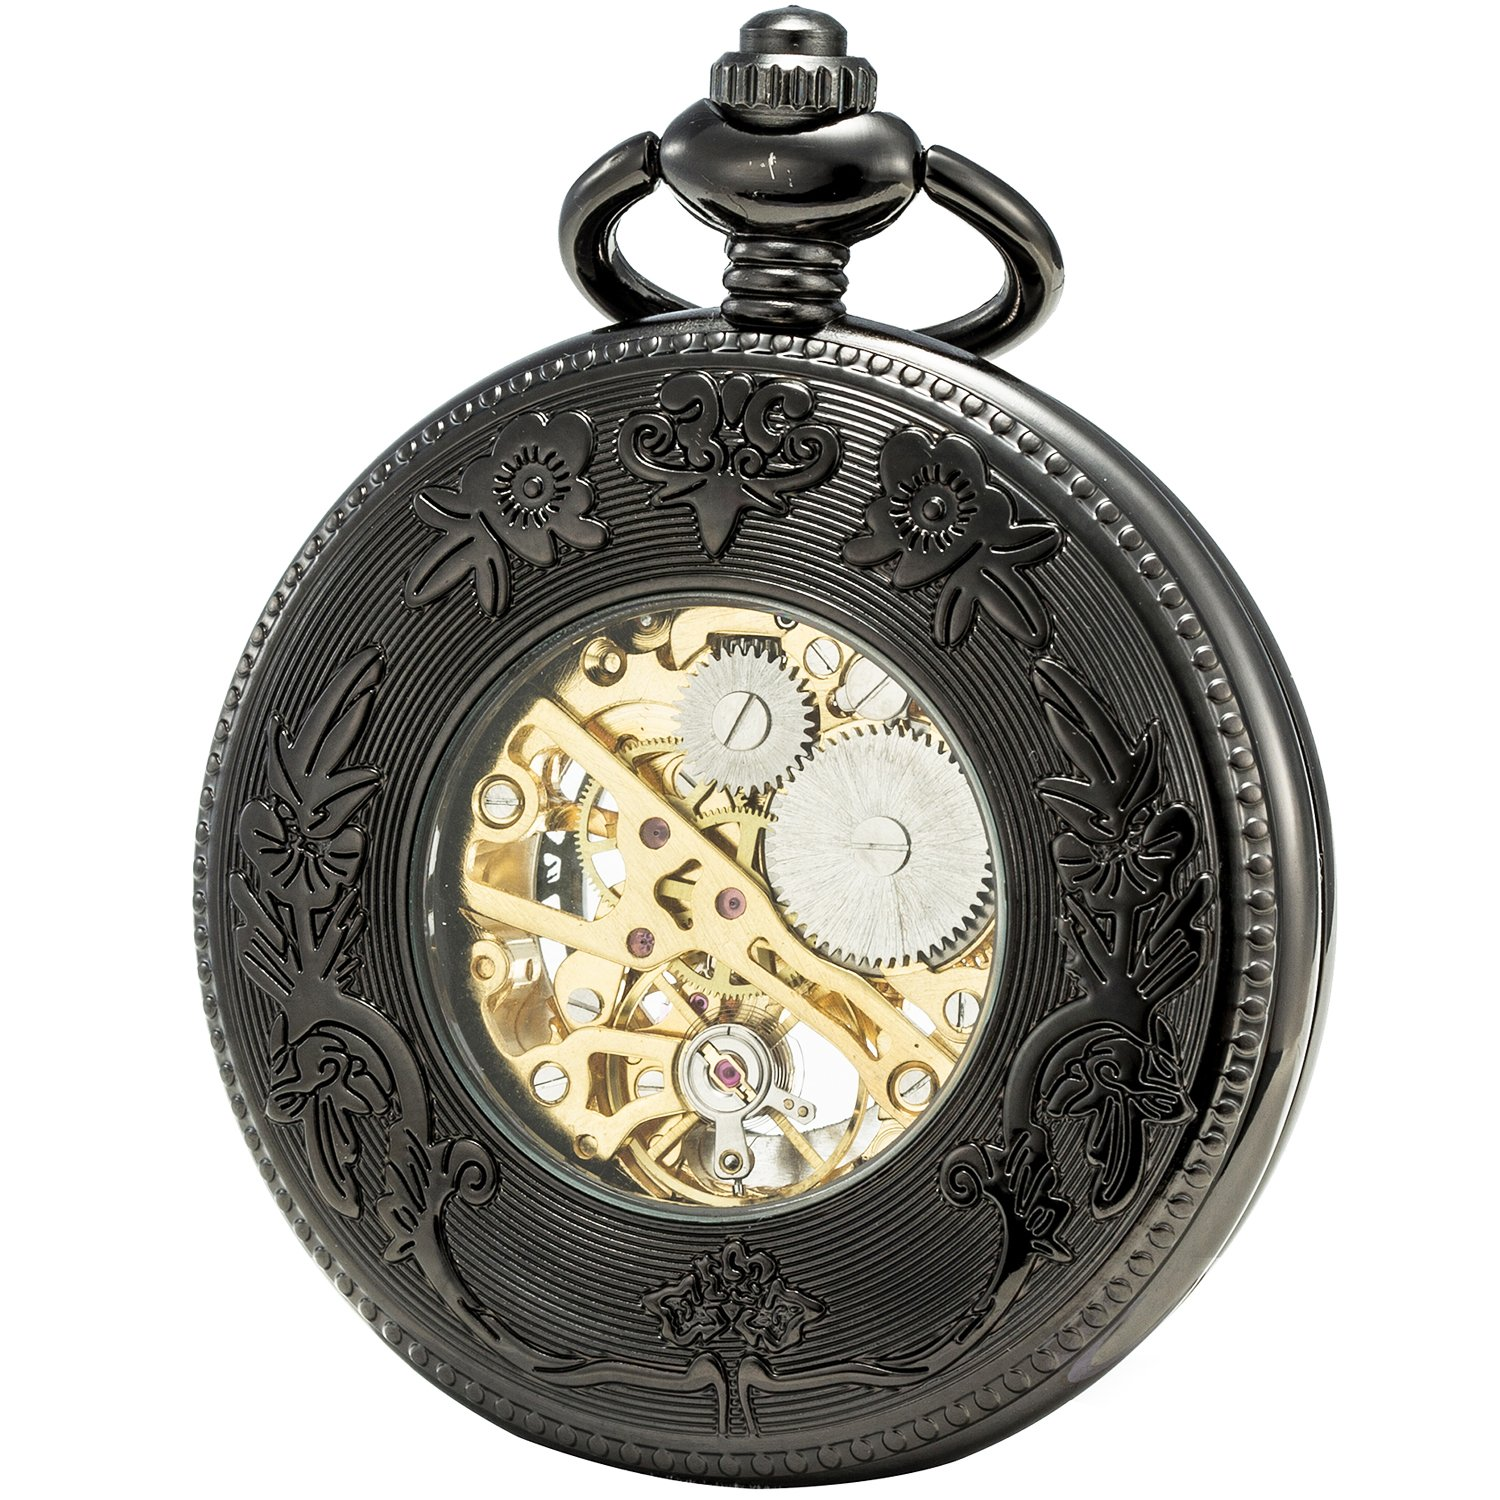 SEWOR Grace Koi Skeleton Pocket Watch Black Mechanical Hand Wind with Leather Gift Box (Black) by SEWOR (Image #2)